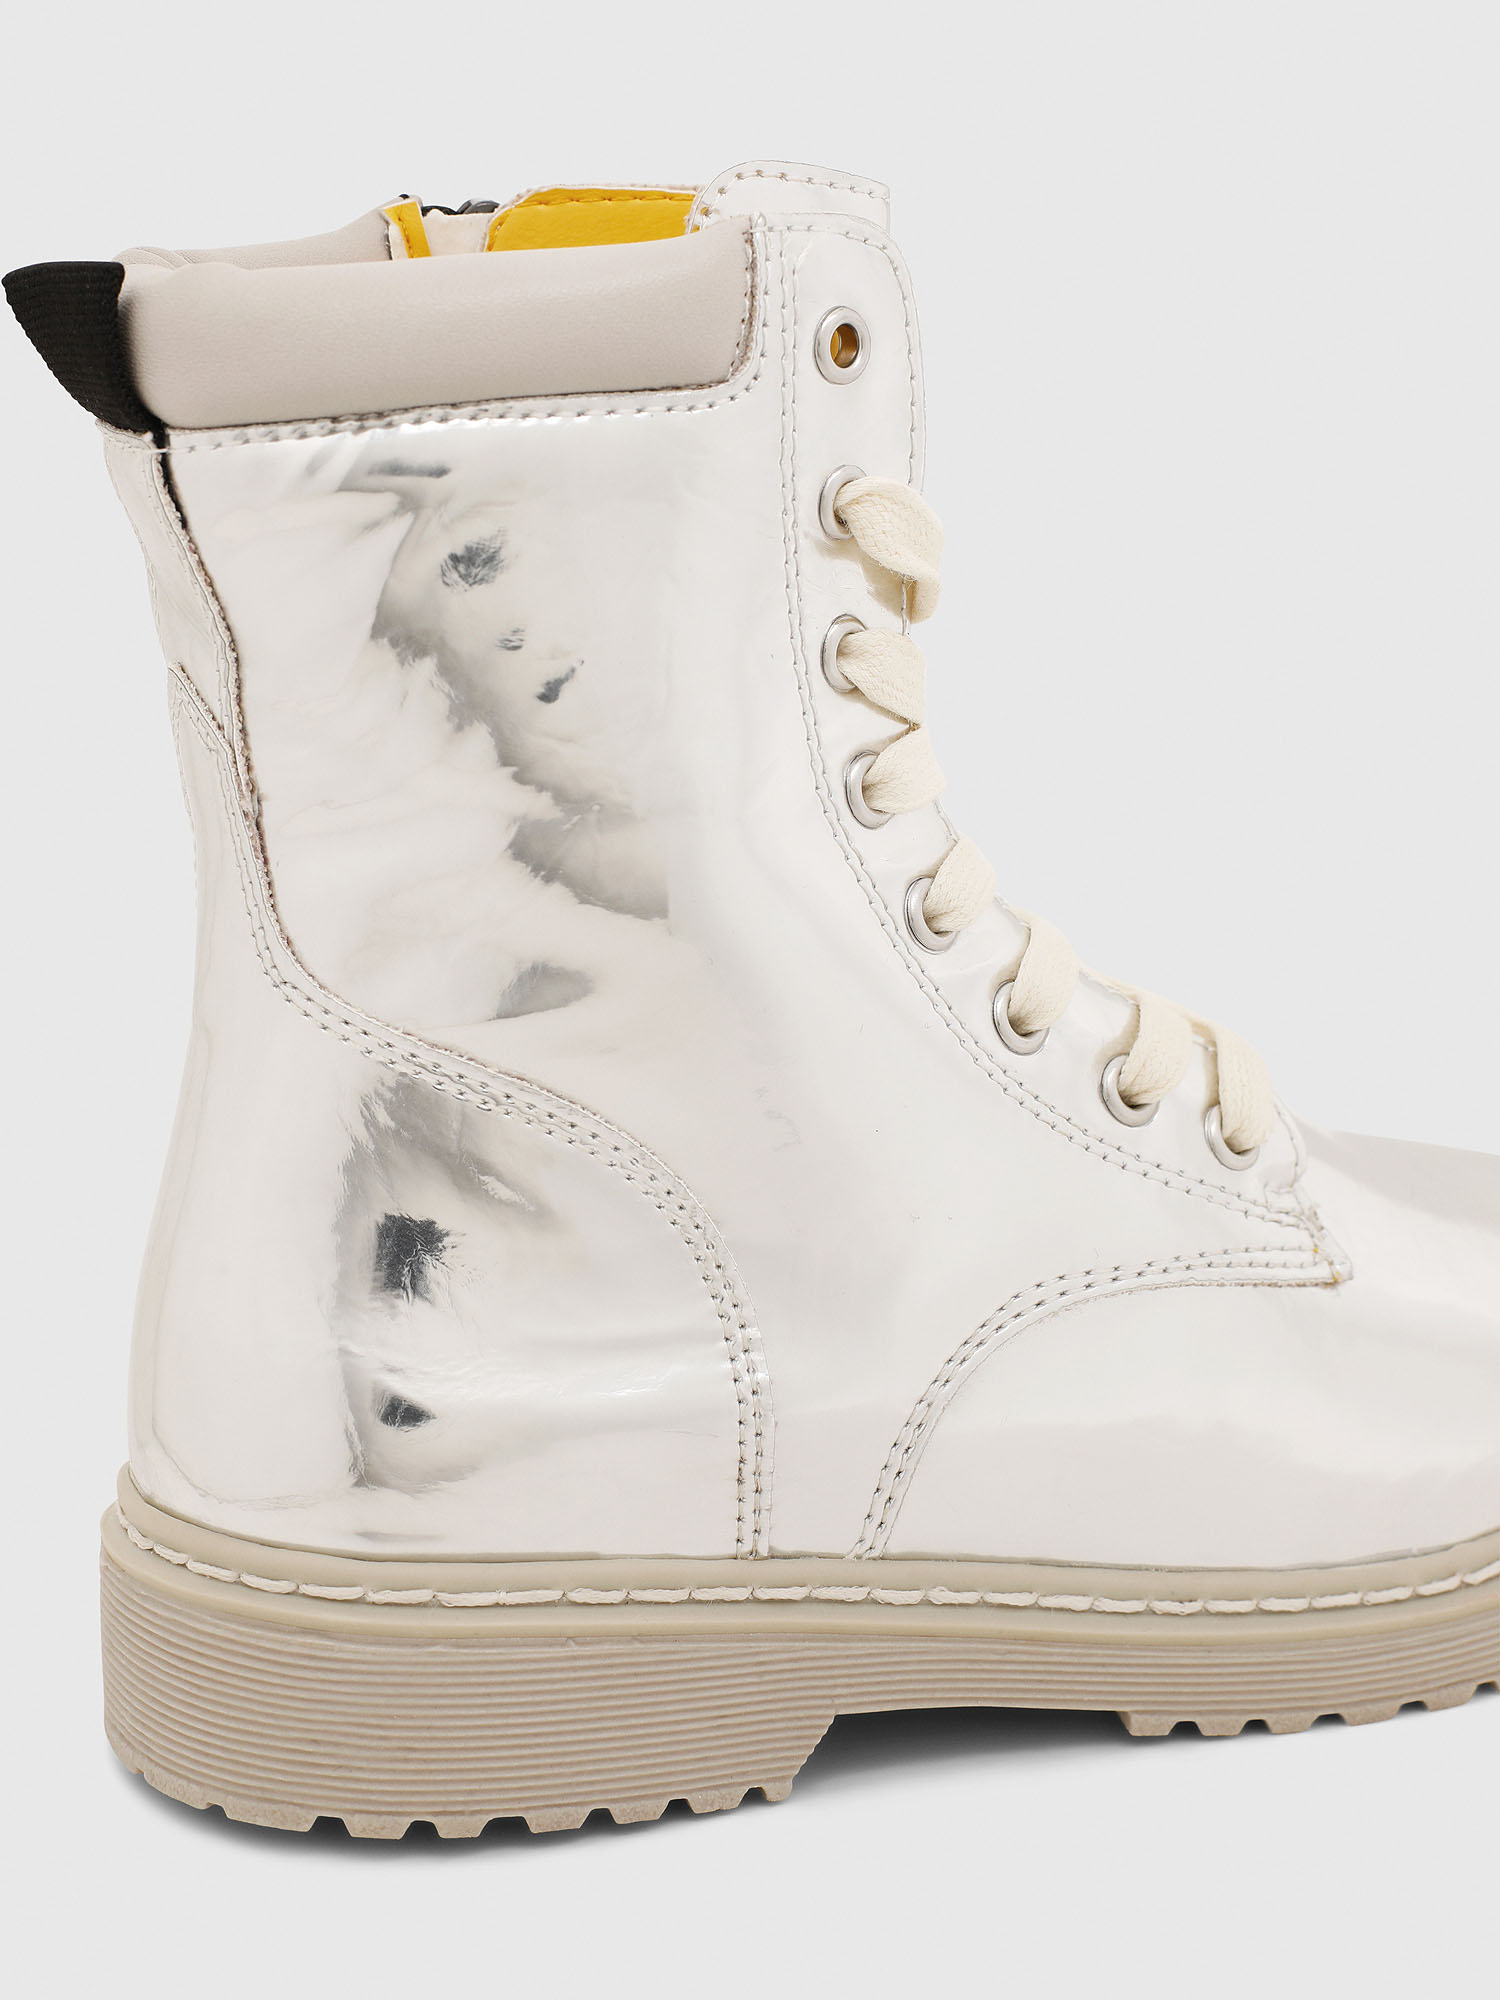 Diesel - HB LACE UP 04 CH,  - Footwear - Image 5